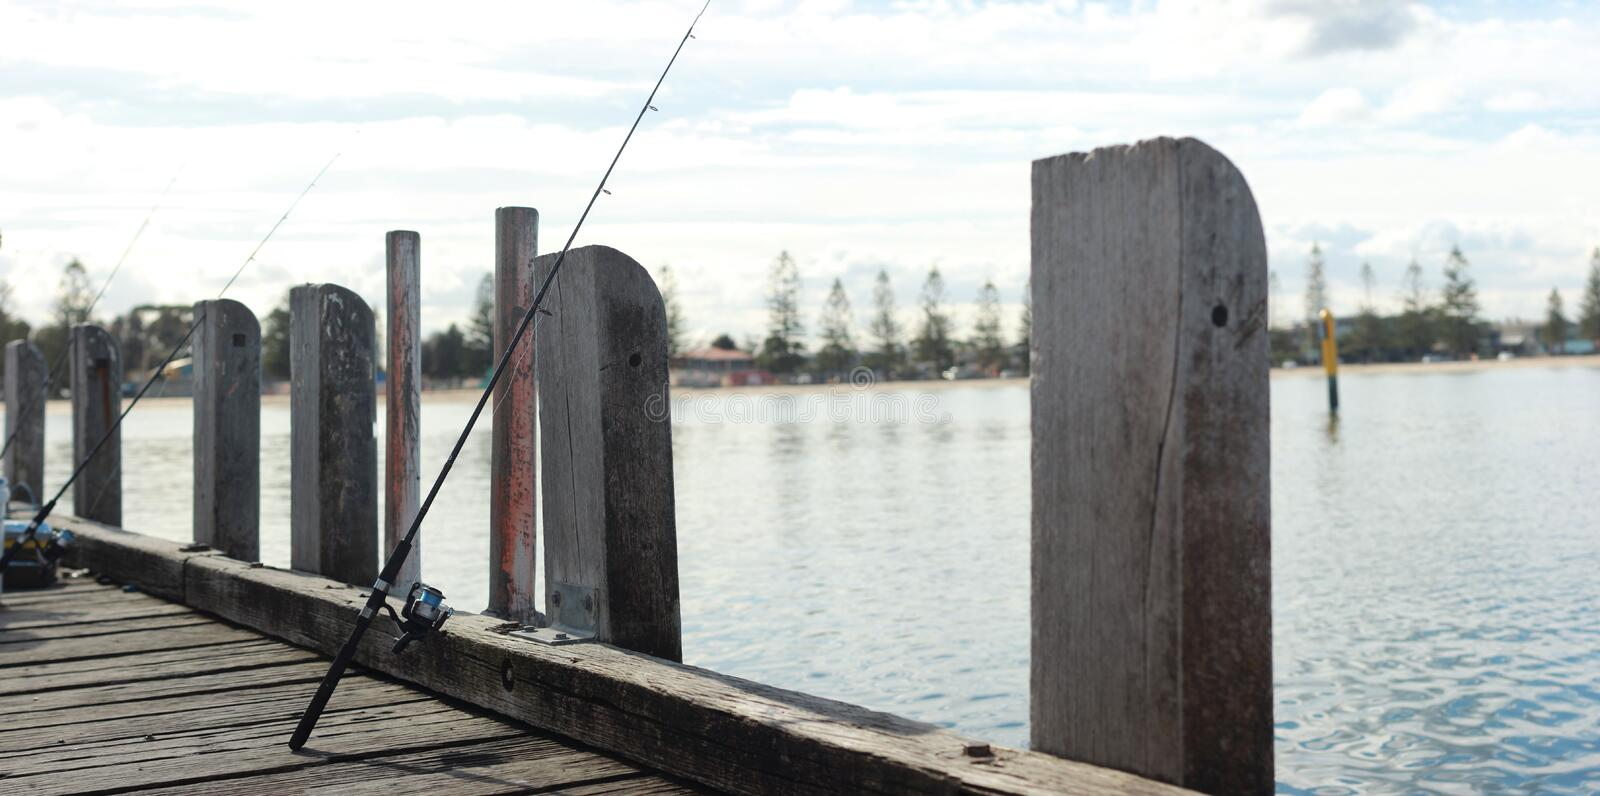 Fishing equipment cast into the ocean on an old timber jetty waiting for fish to bite. Coastal Victoria, Australia stock images